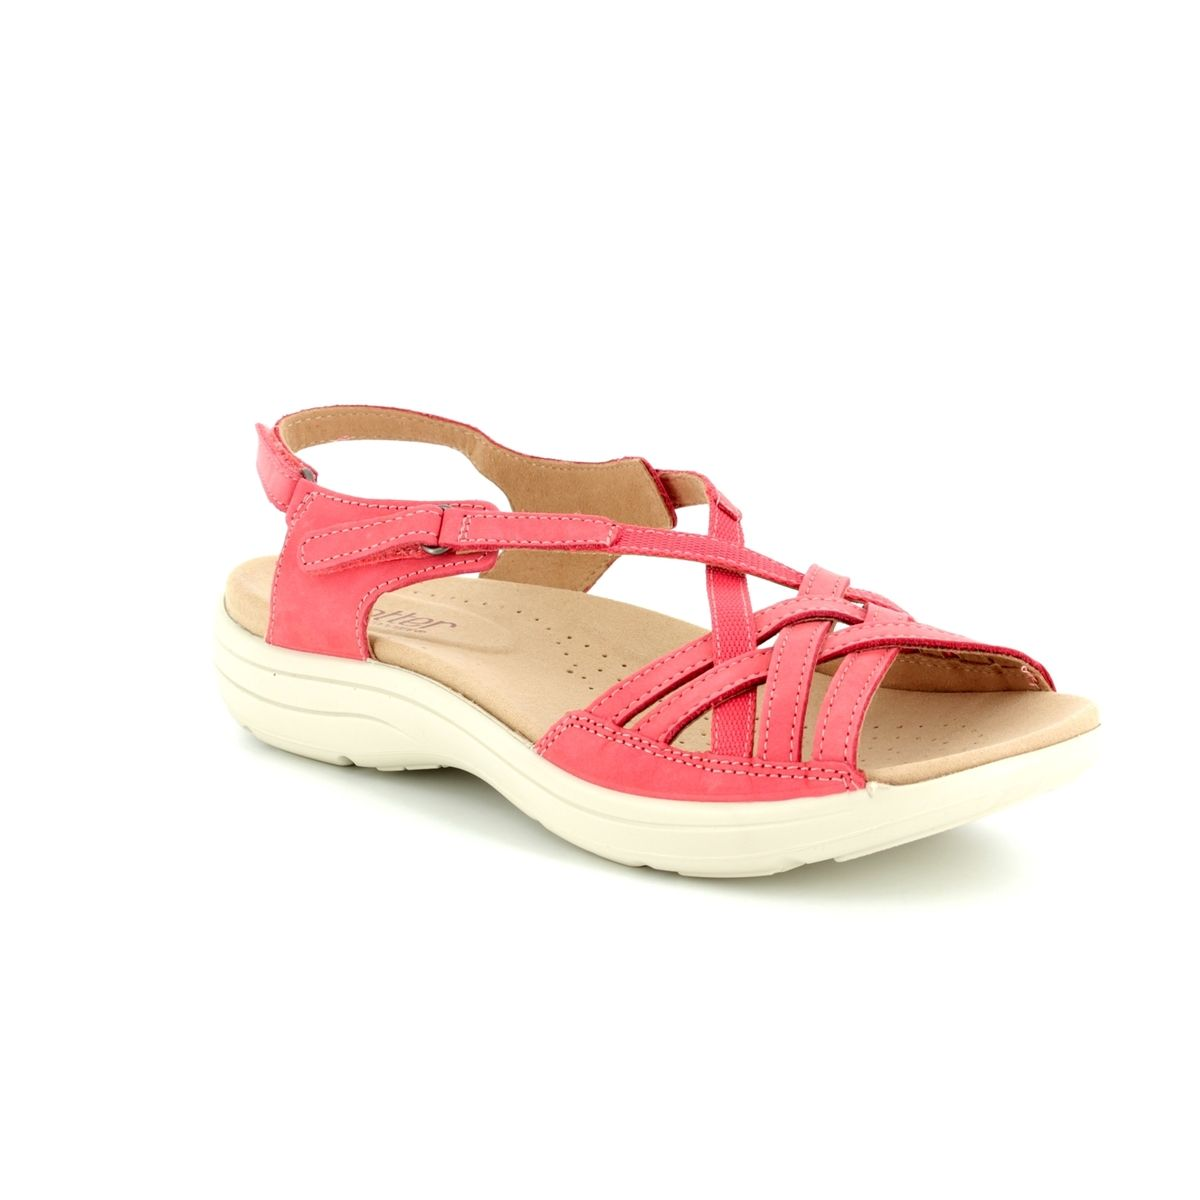 63259009 Hotter Maisie E Fit 8109-80 Coral pink sandals